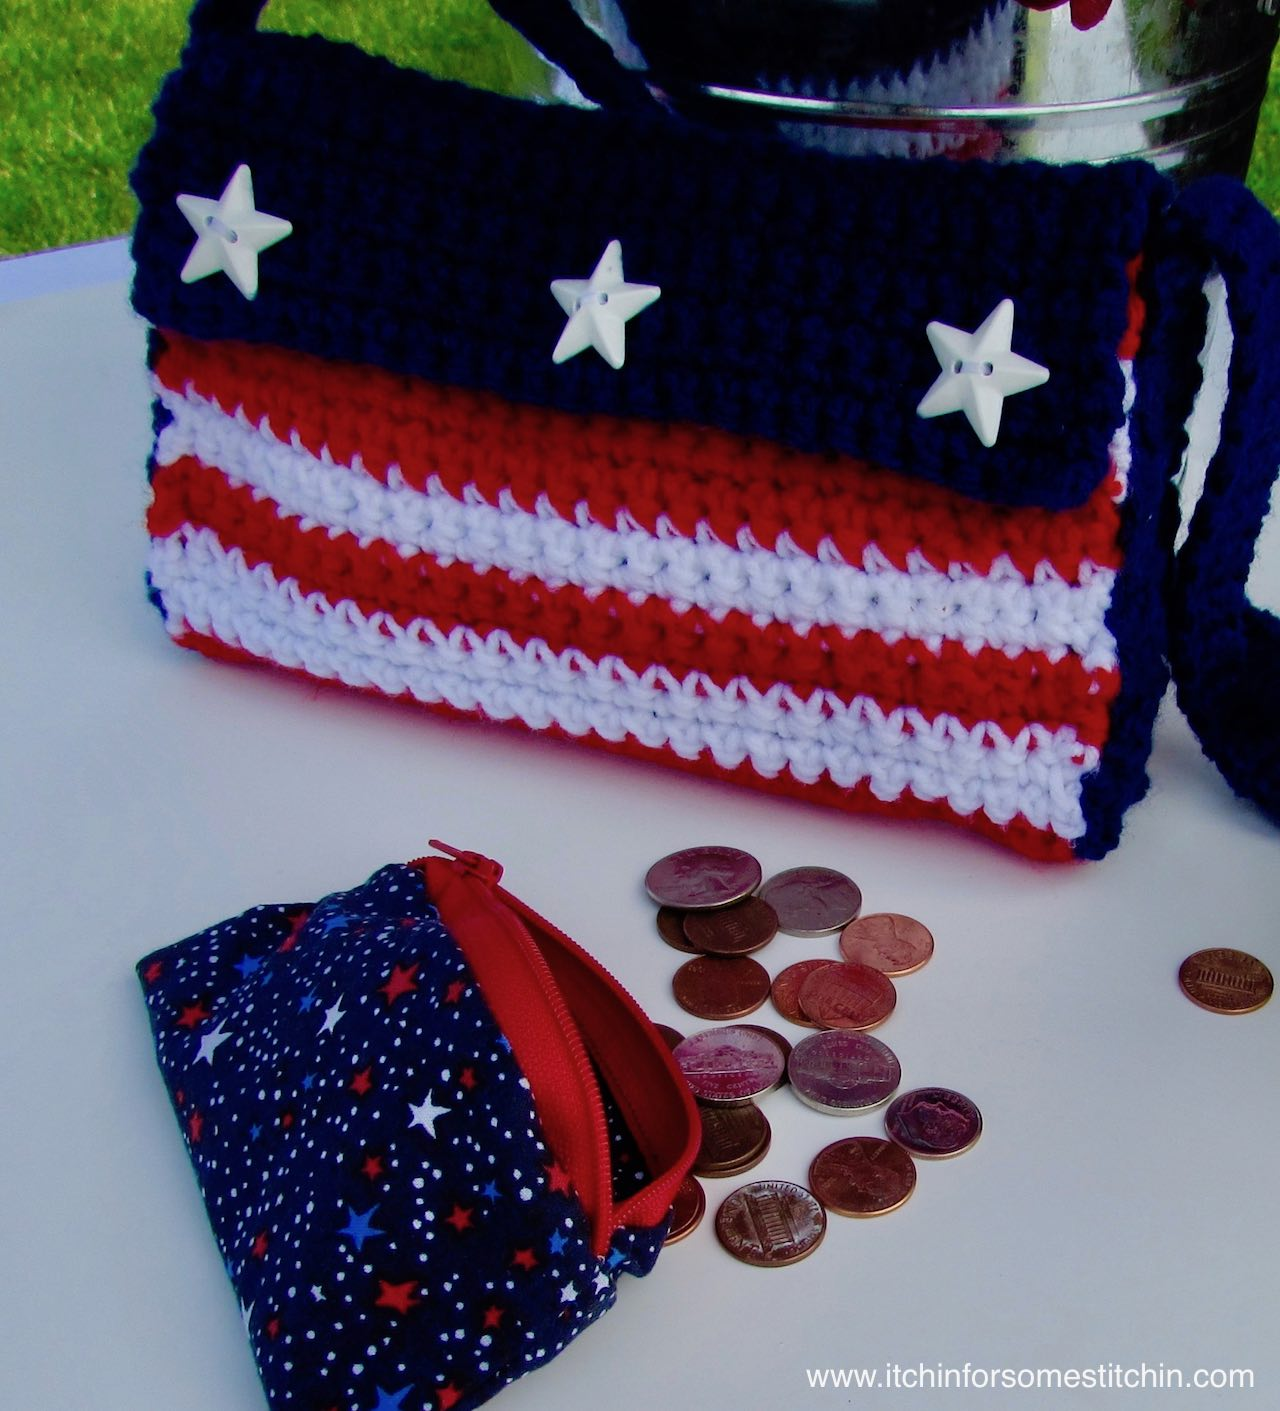 Red, White, and Blue Zipper Pouch and Crochet 4th of July American Flag Purse by www.itchinforsomestitchin.com